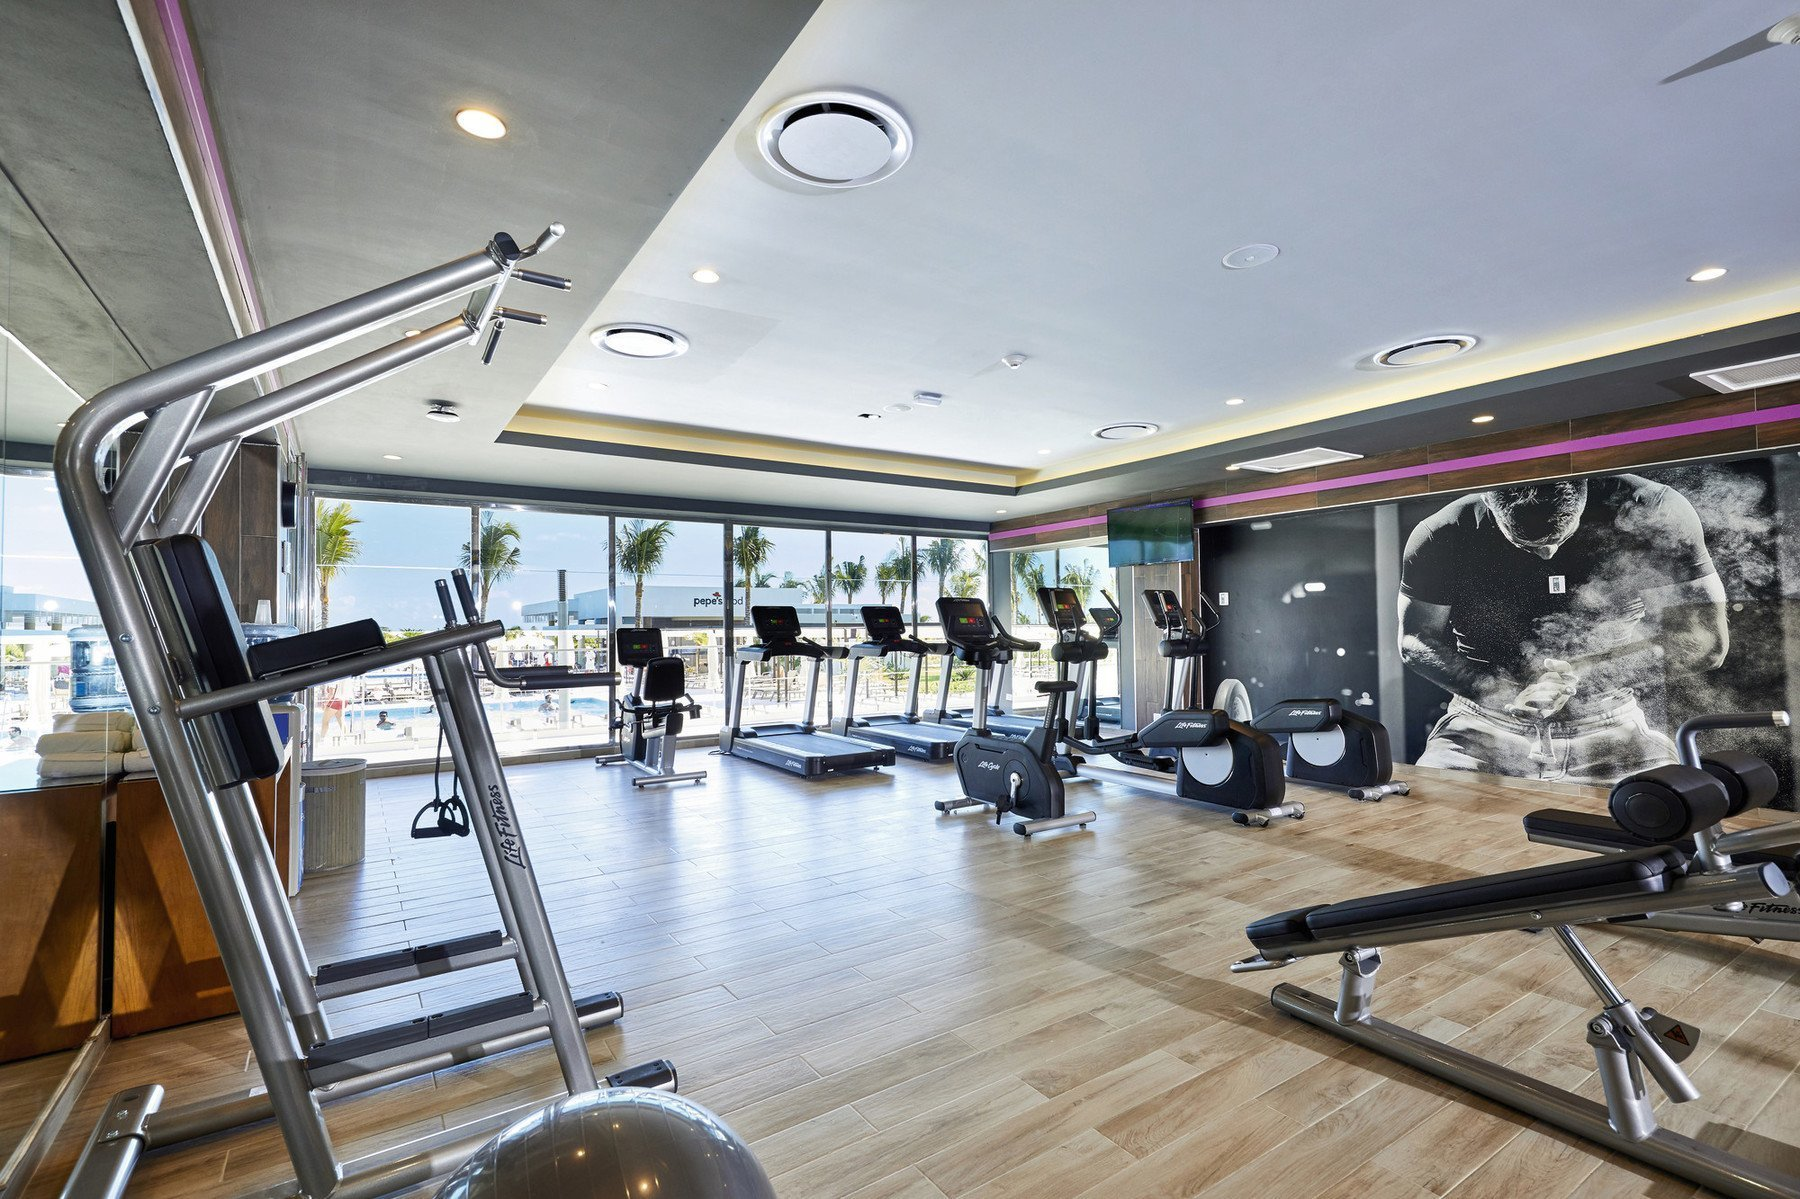 riu palace costa mujeres gym